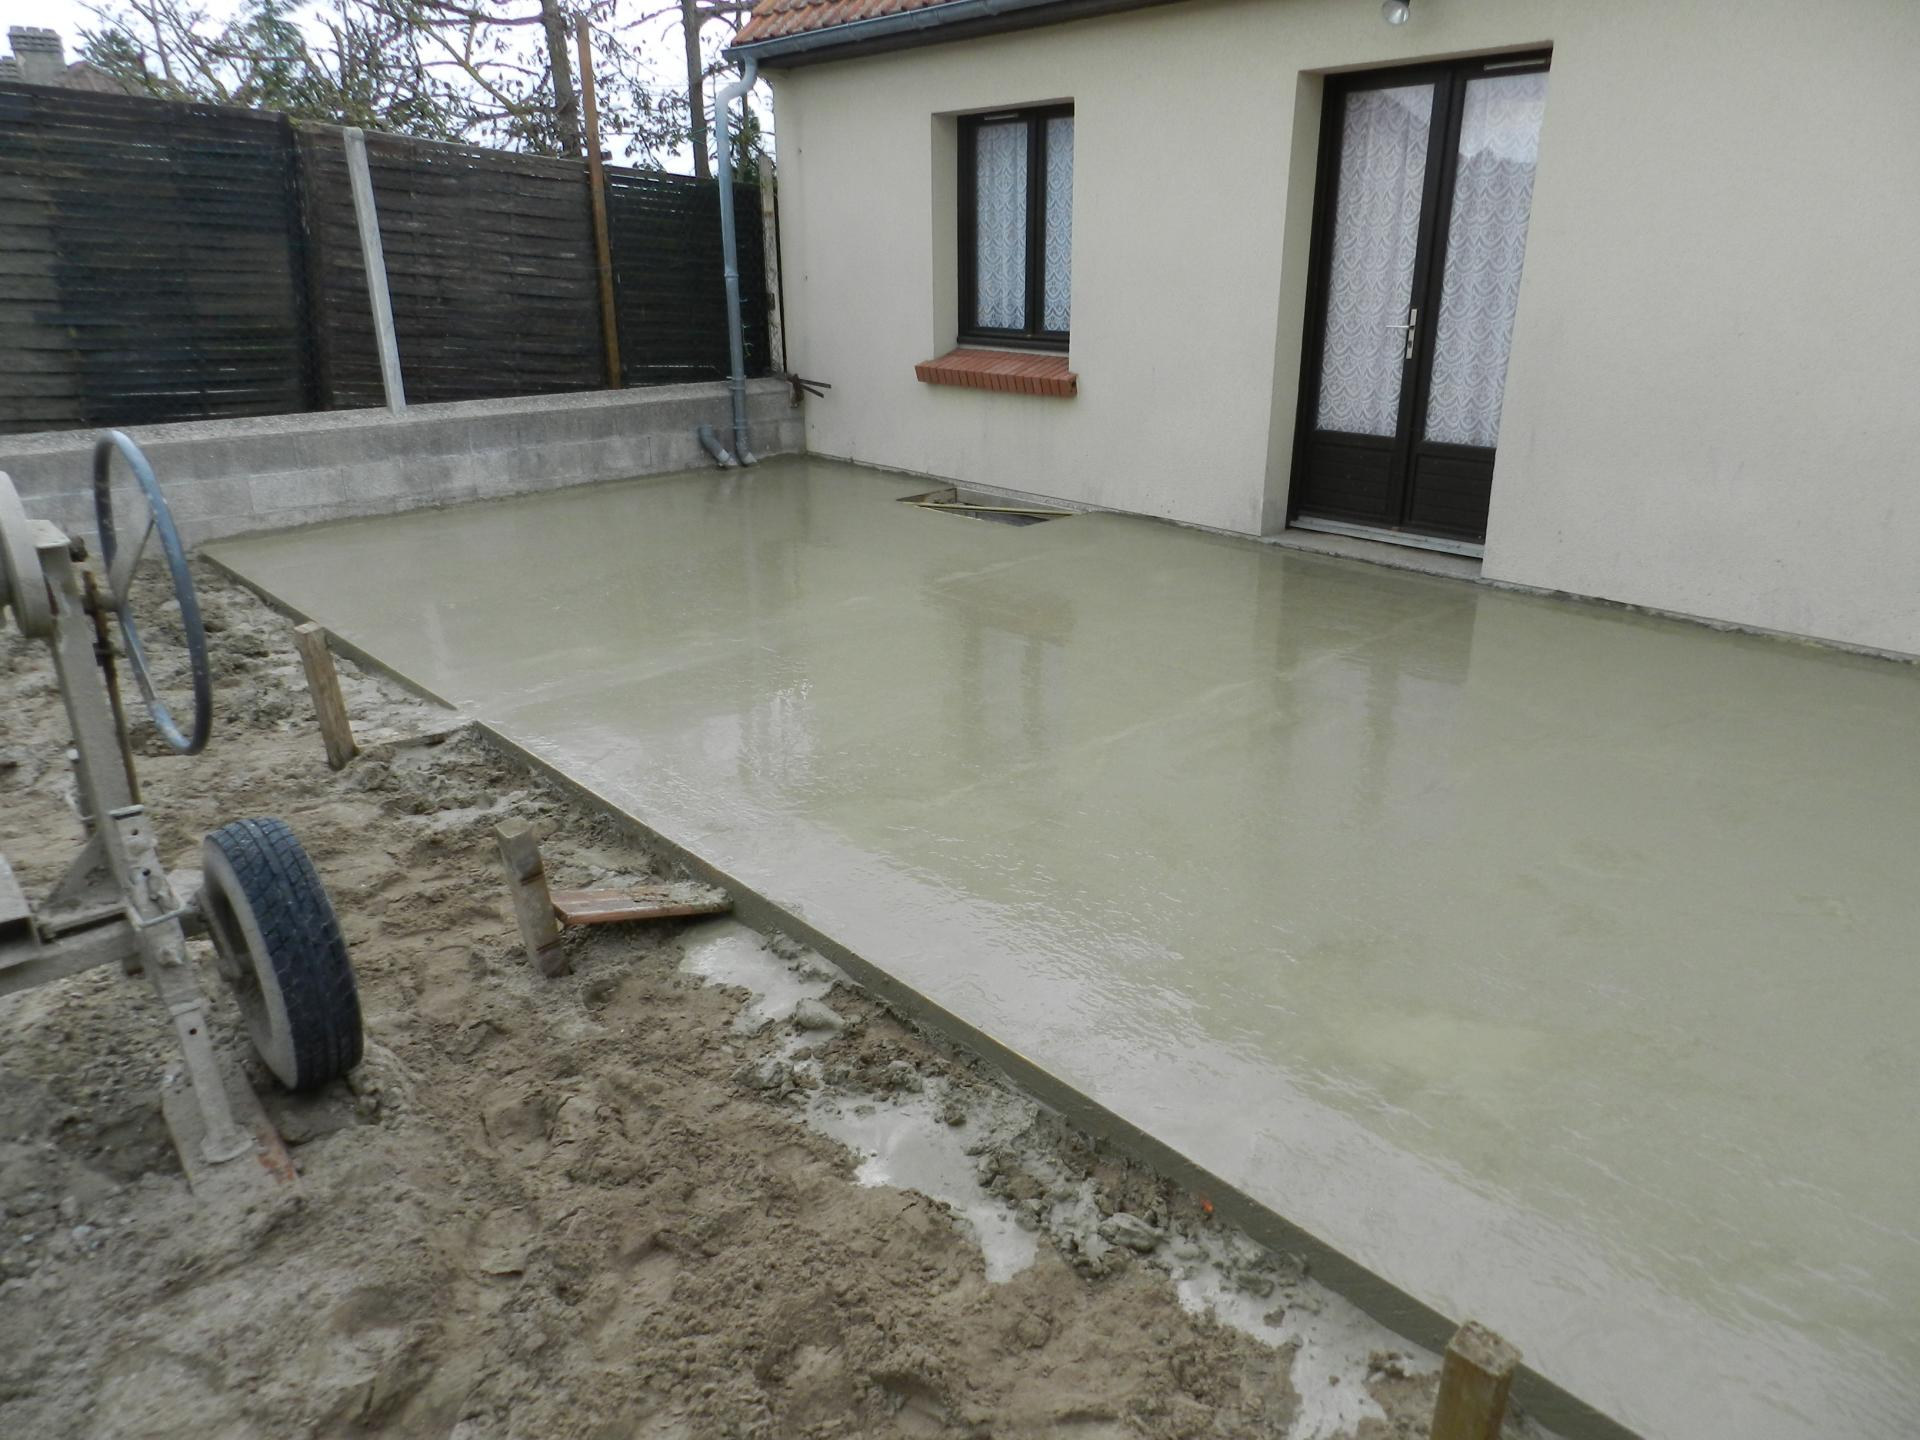 Dalle Terrasse 50x50 Dalle Terrasse Beton 50x50 Best Dalle Ondeane Sable With Dalle